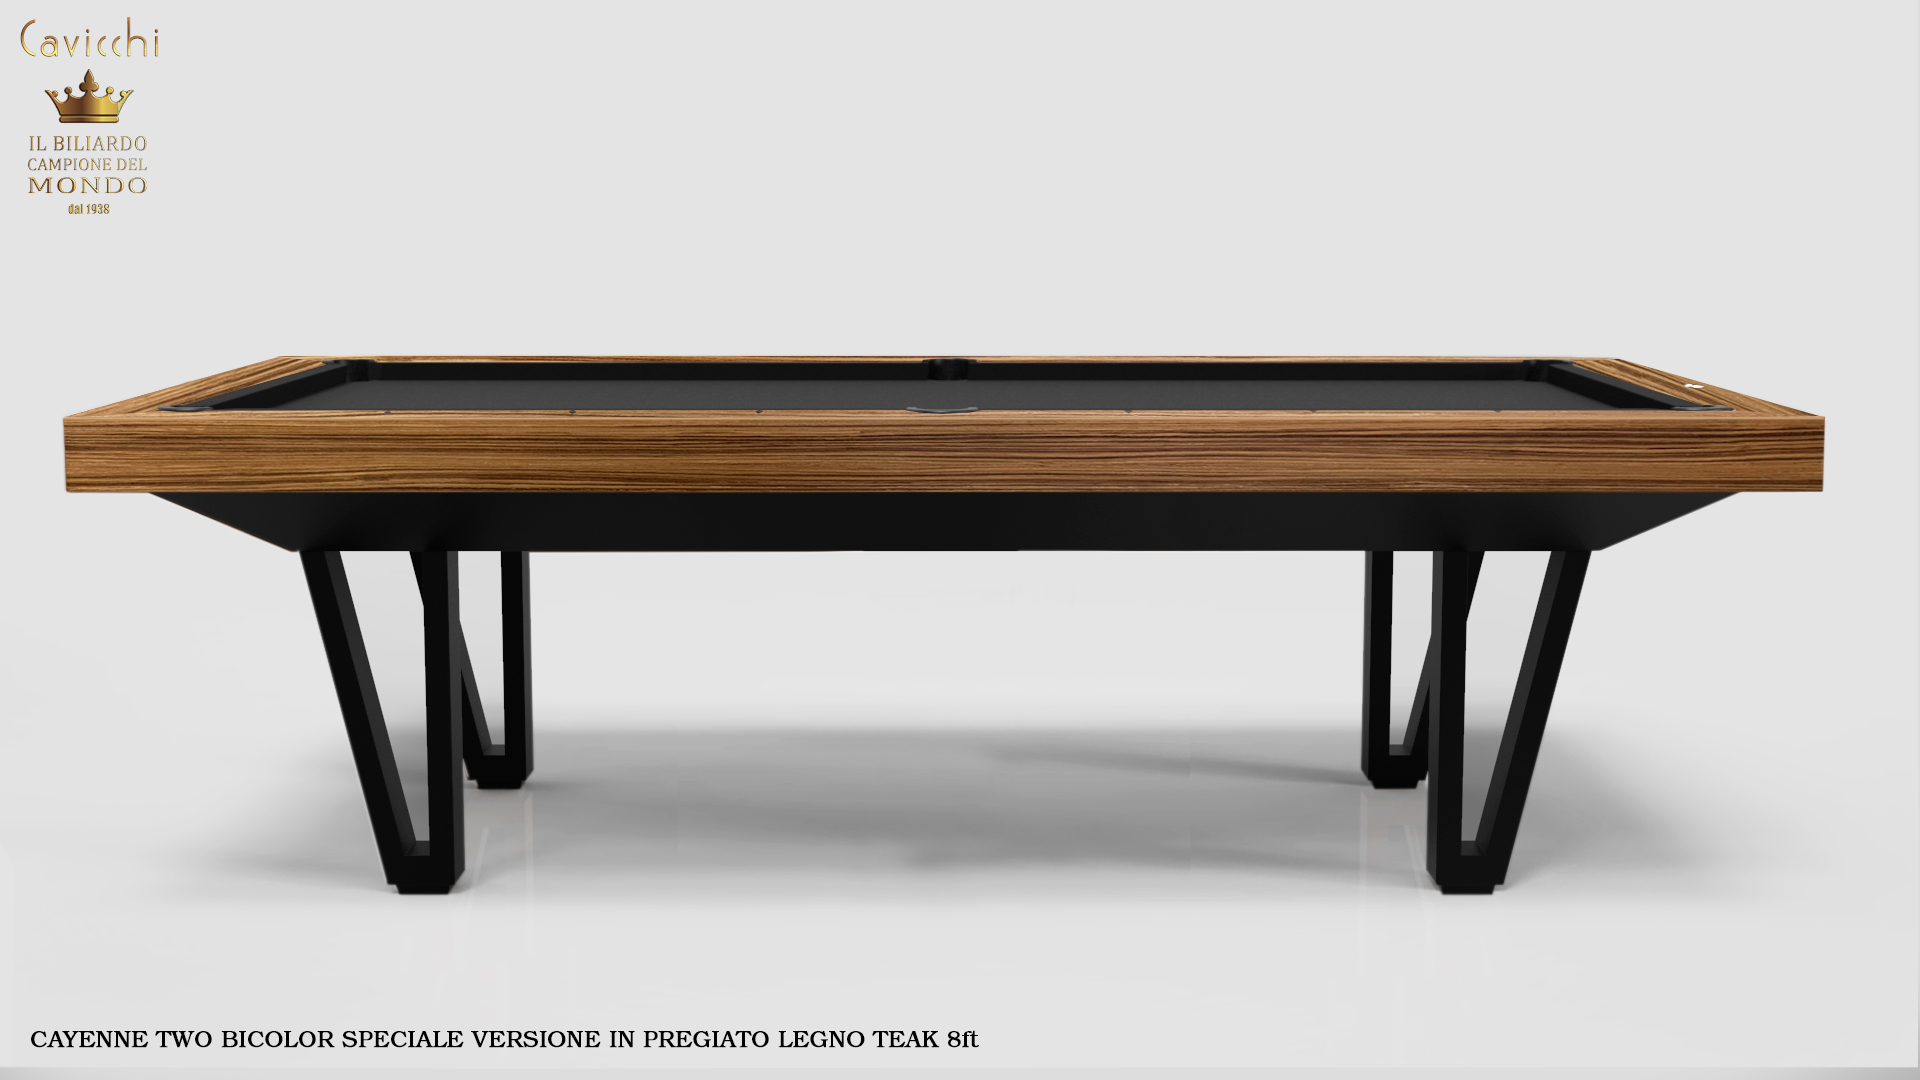 Pool Table Mod. Cayenne Two Bicolor Version 19